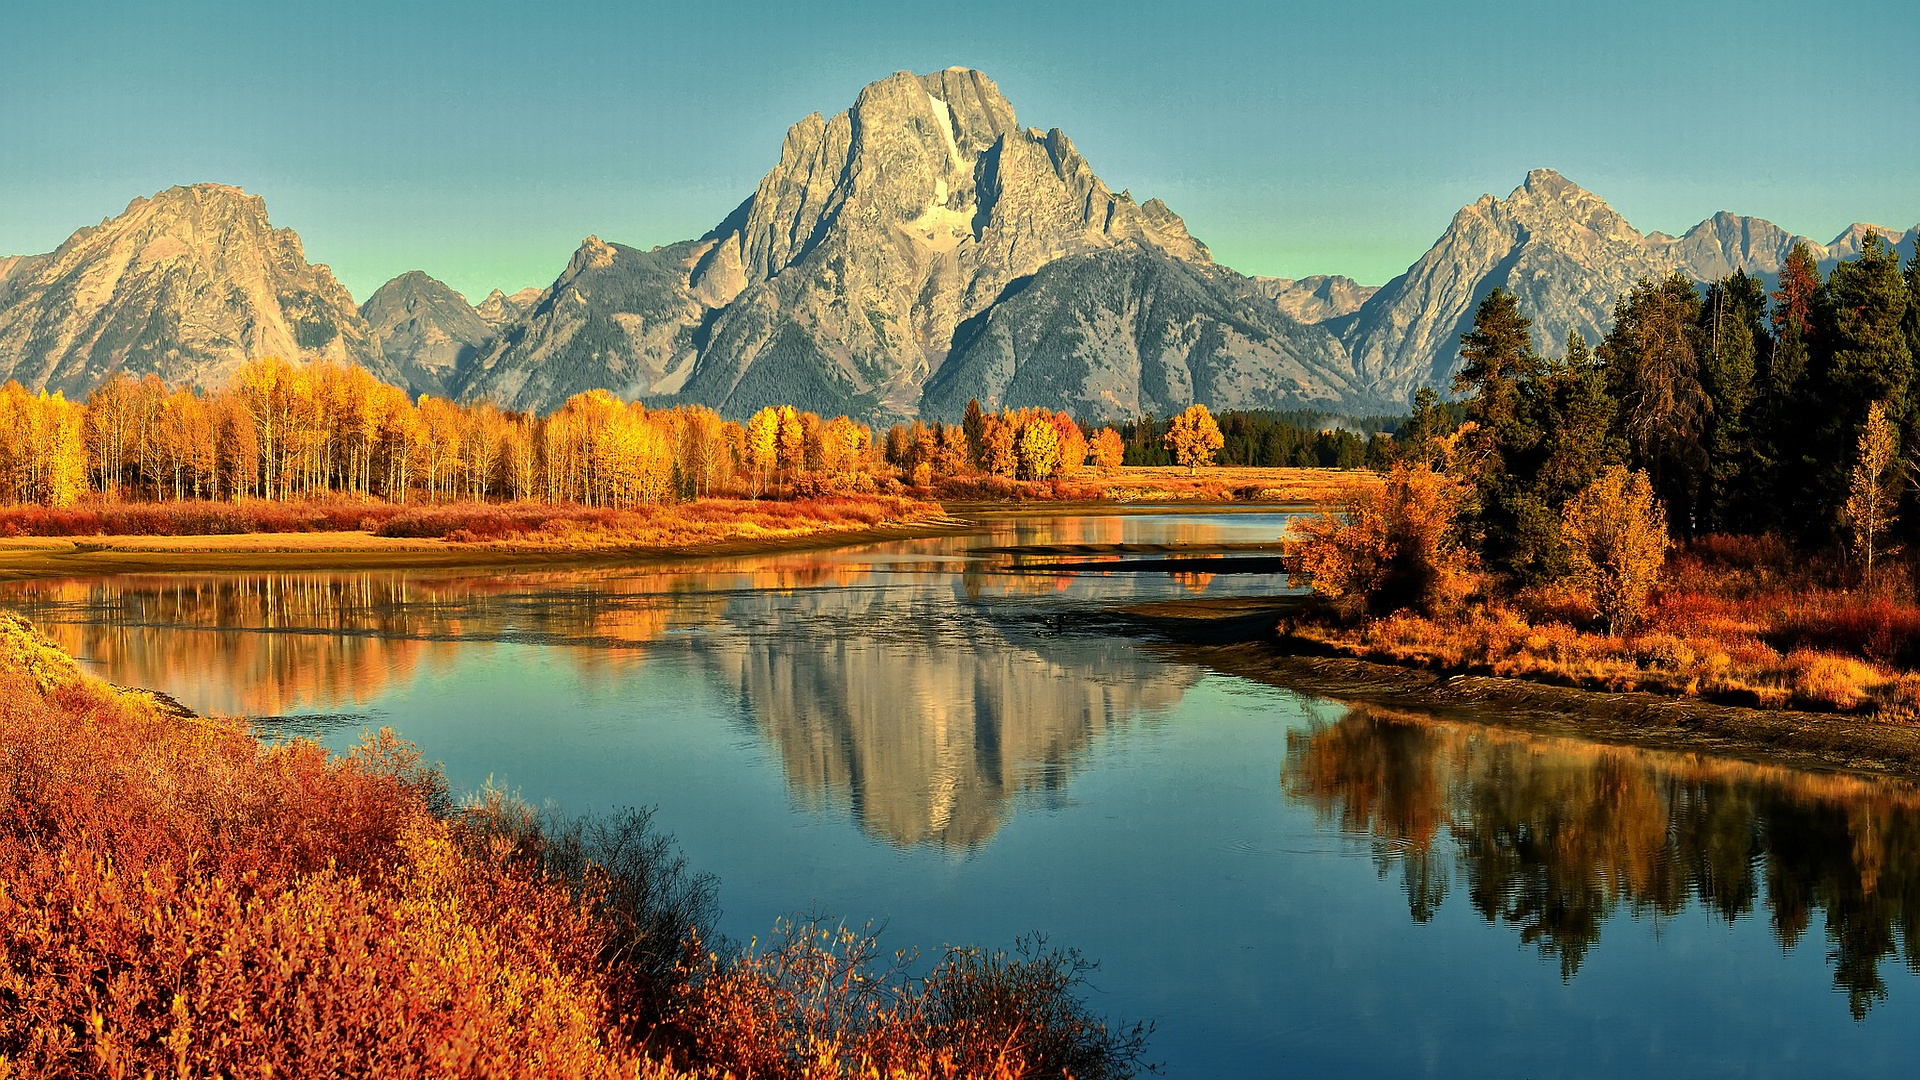 Autumn Mountain Wallpaper Xpx River Hd 1920x1080px